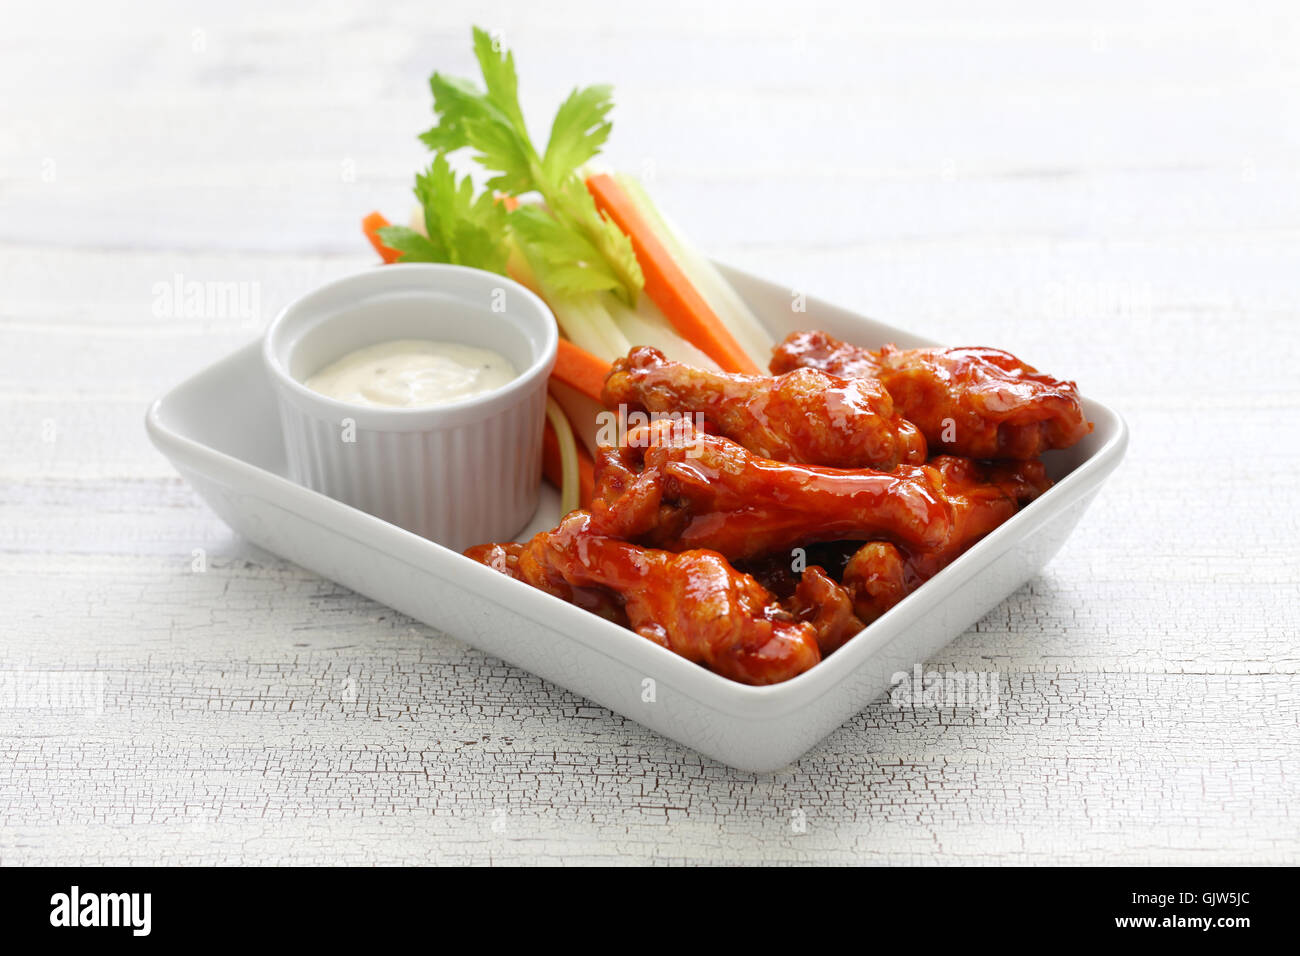 buffalo chicken wings, american food - Stock Image